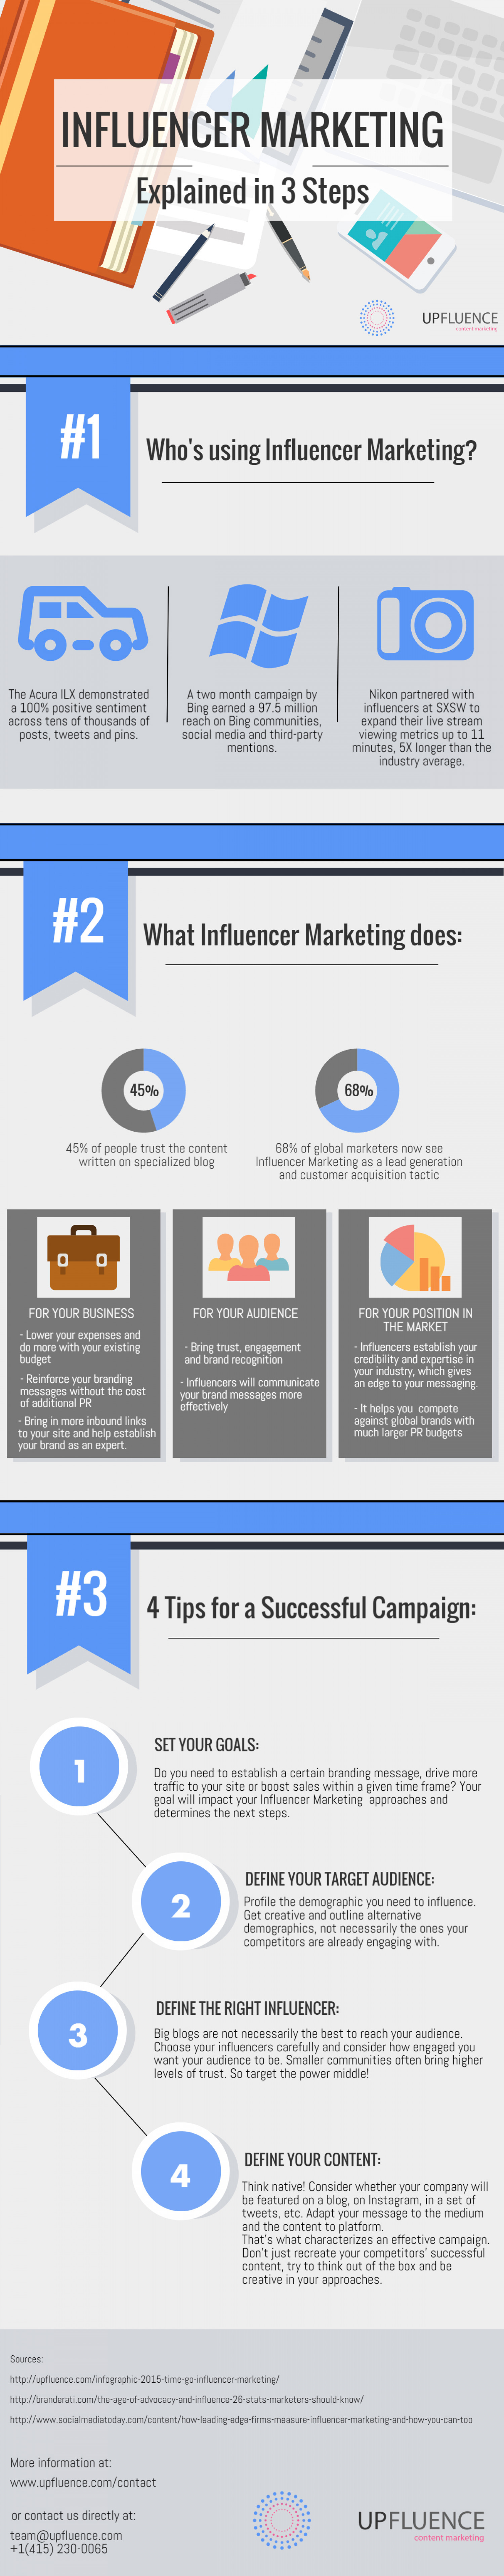 Influencer Marketing Explained in 3 Steps Infographic